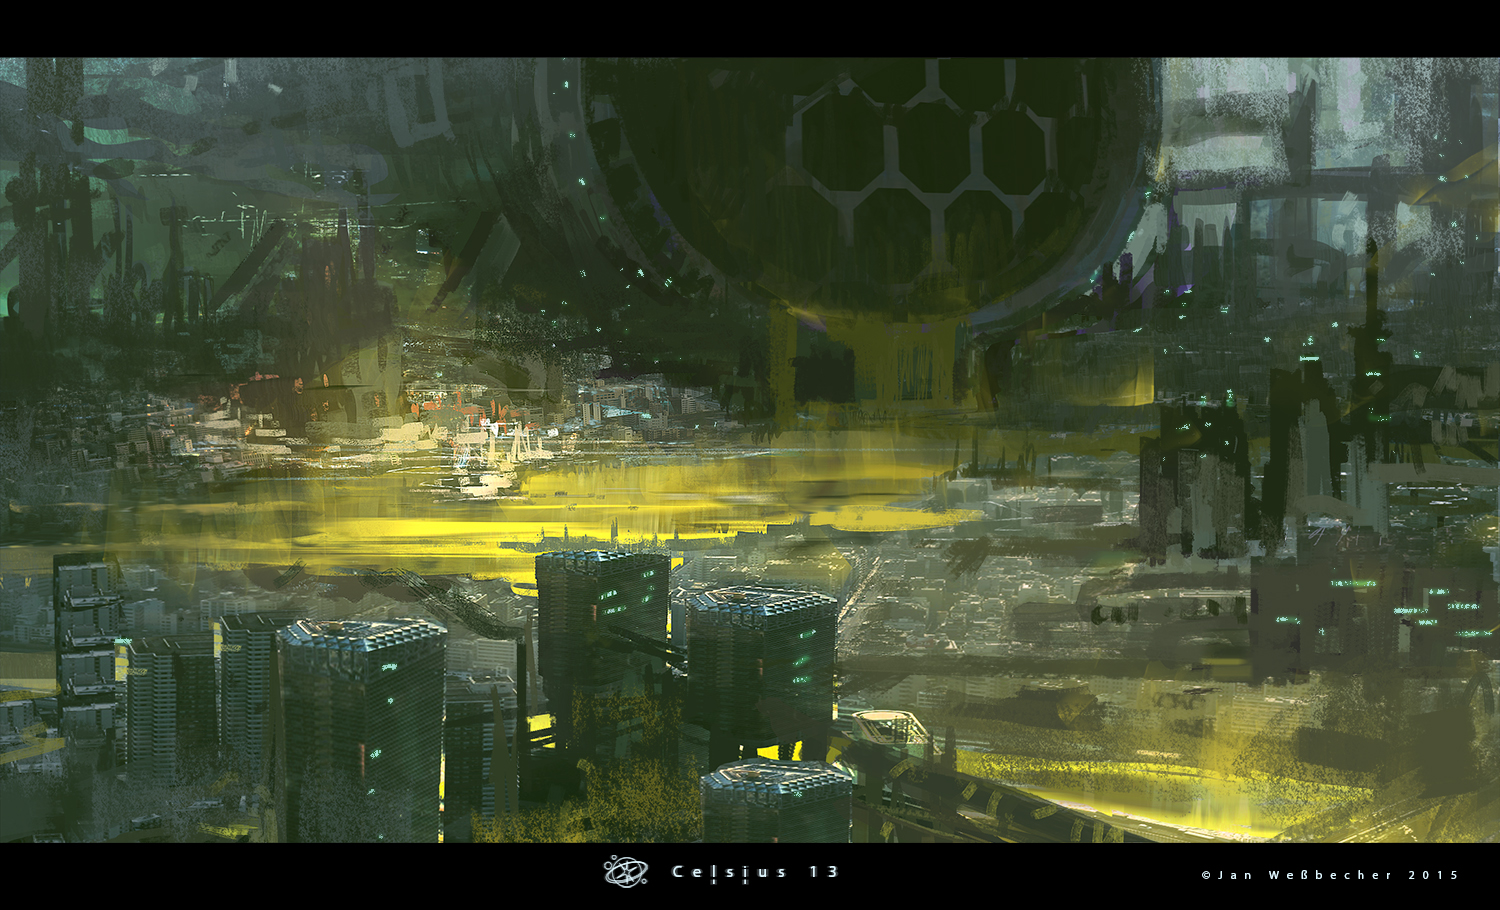 Celsius 13 - Polluted City